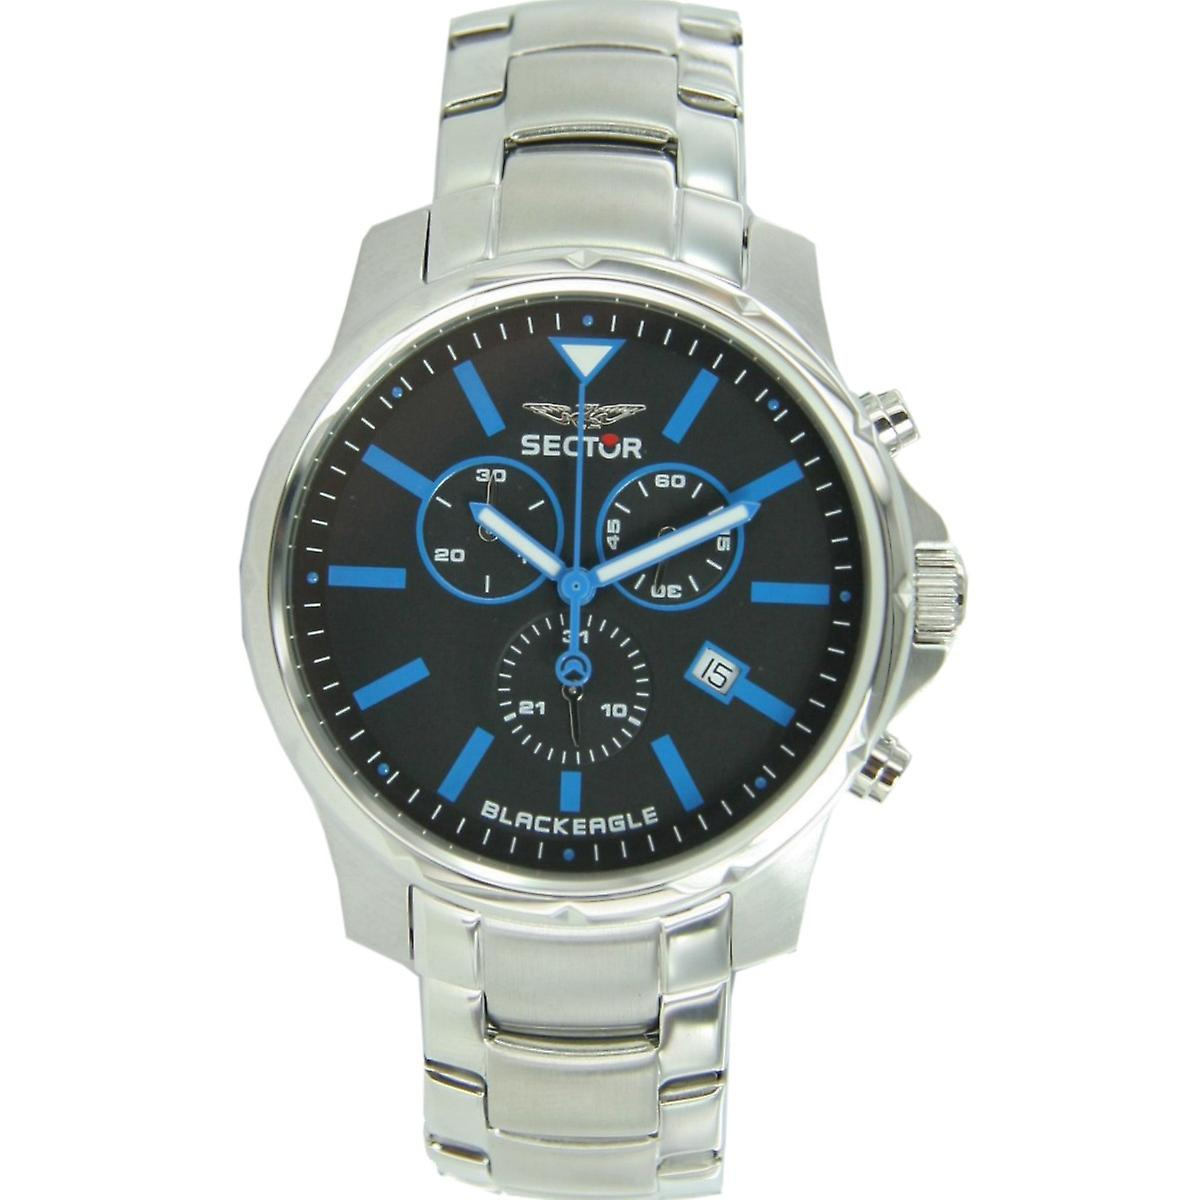 Sector men's watch wrist watch no limits - Black Eagle stainless steel R3273689002